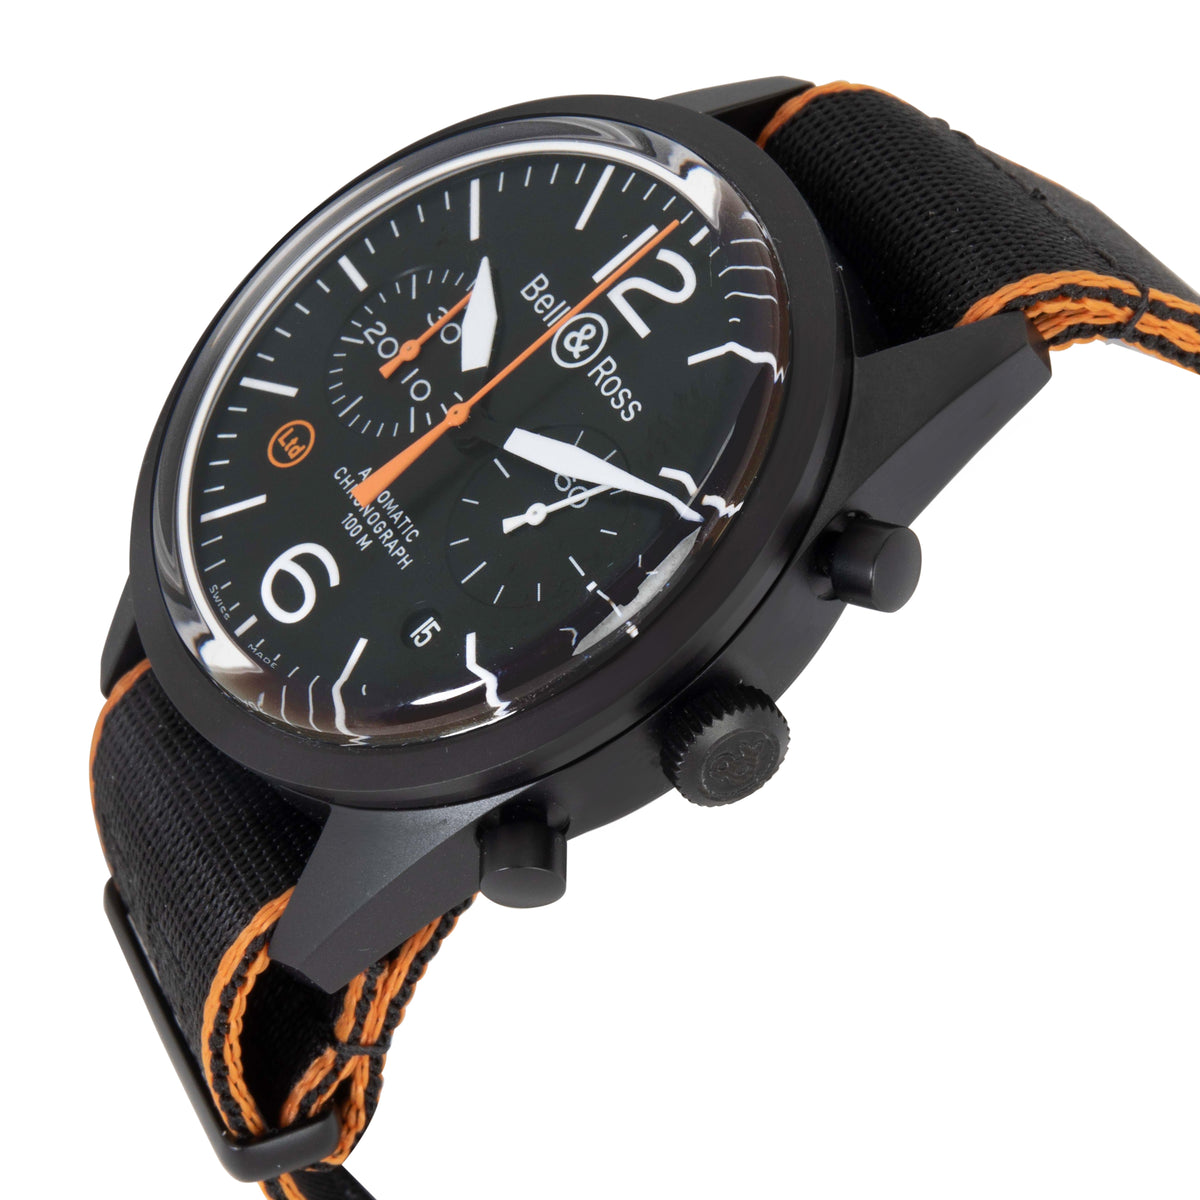 Bell & Ross Carbon Orange BRV126-O-CA Men's Watch in  PVD